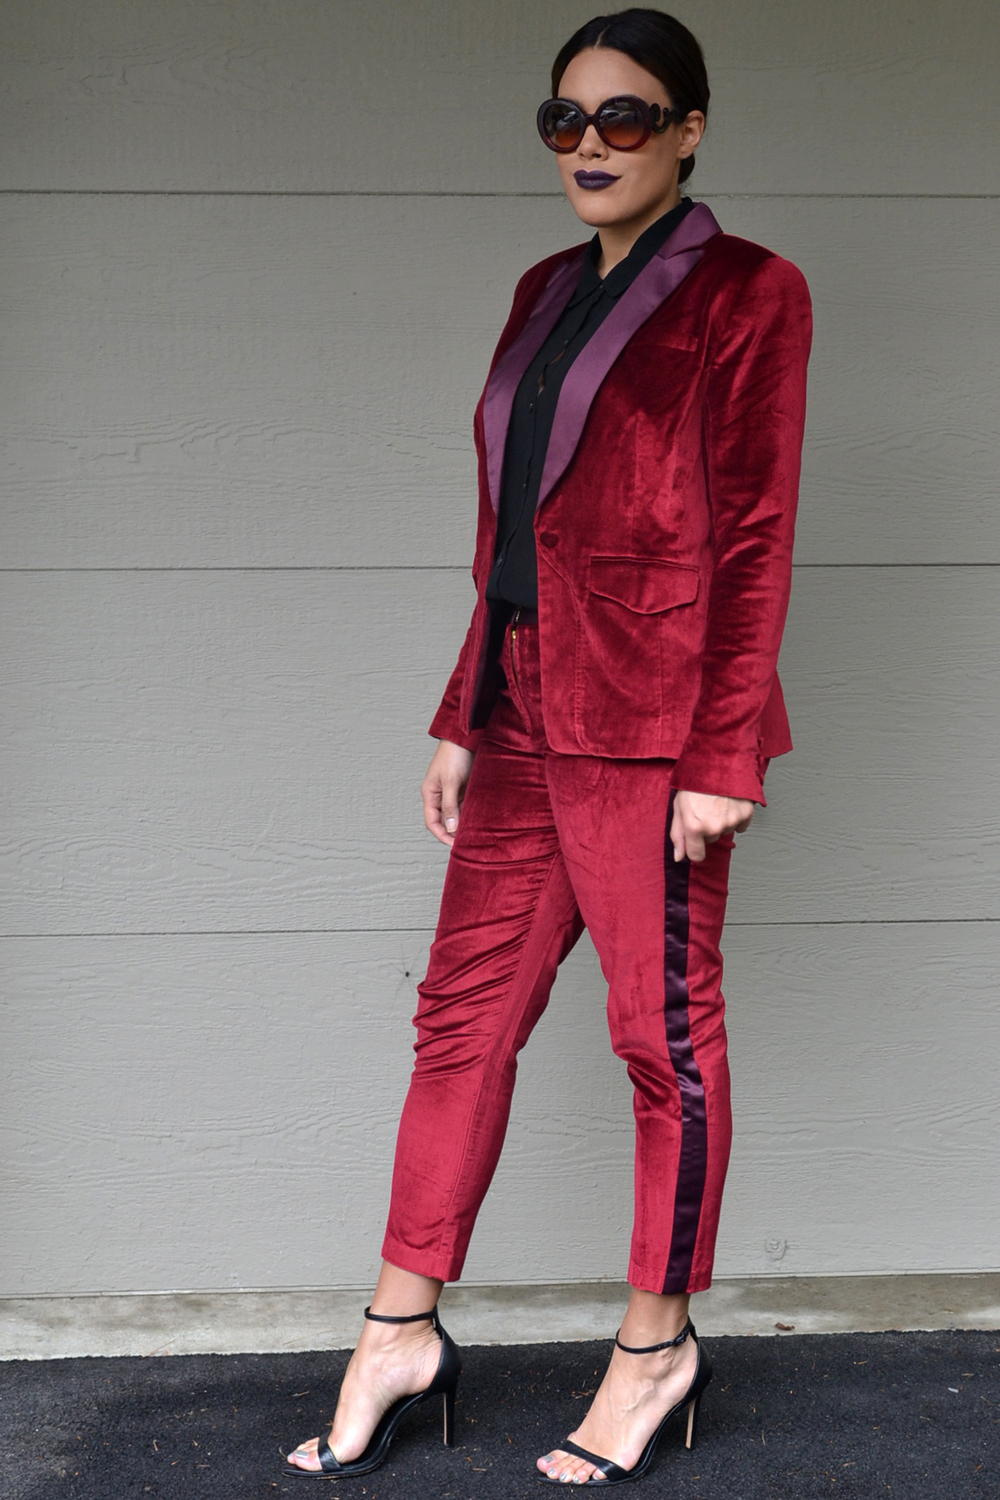 how-to-wear-altuzarra-for-target-red-velvet-blazer-and-pants-suit-set-prada-baroque-sunglasses-forever-21-black-chiffon-blouse-zara-ankle-strap-heels.jpg